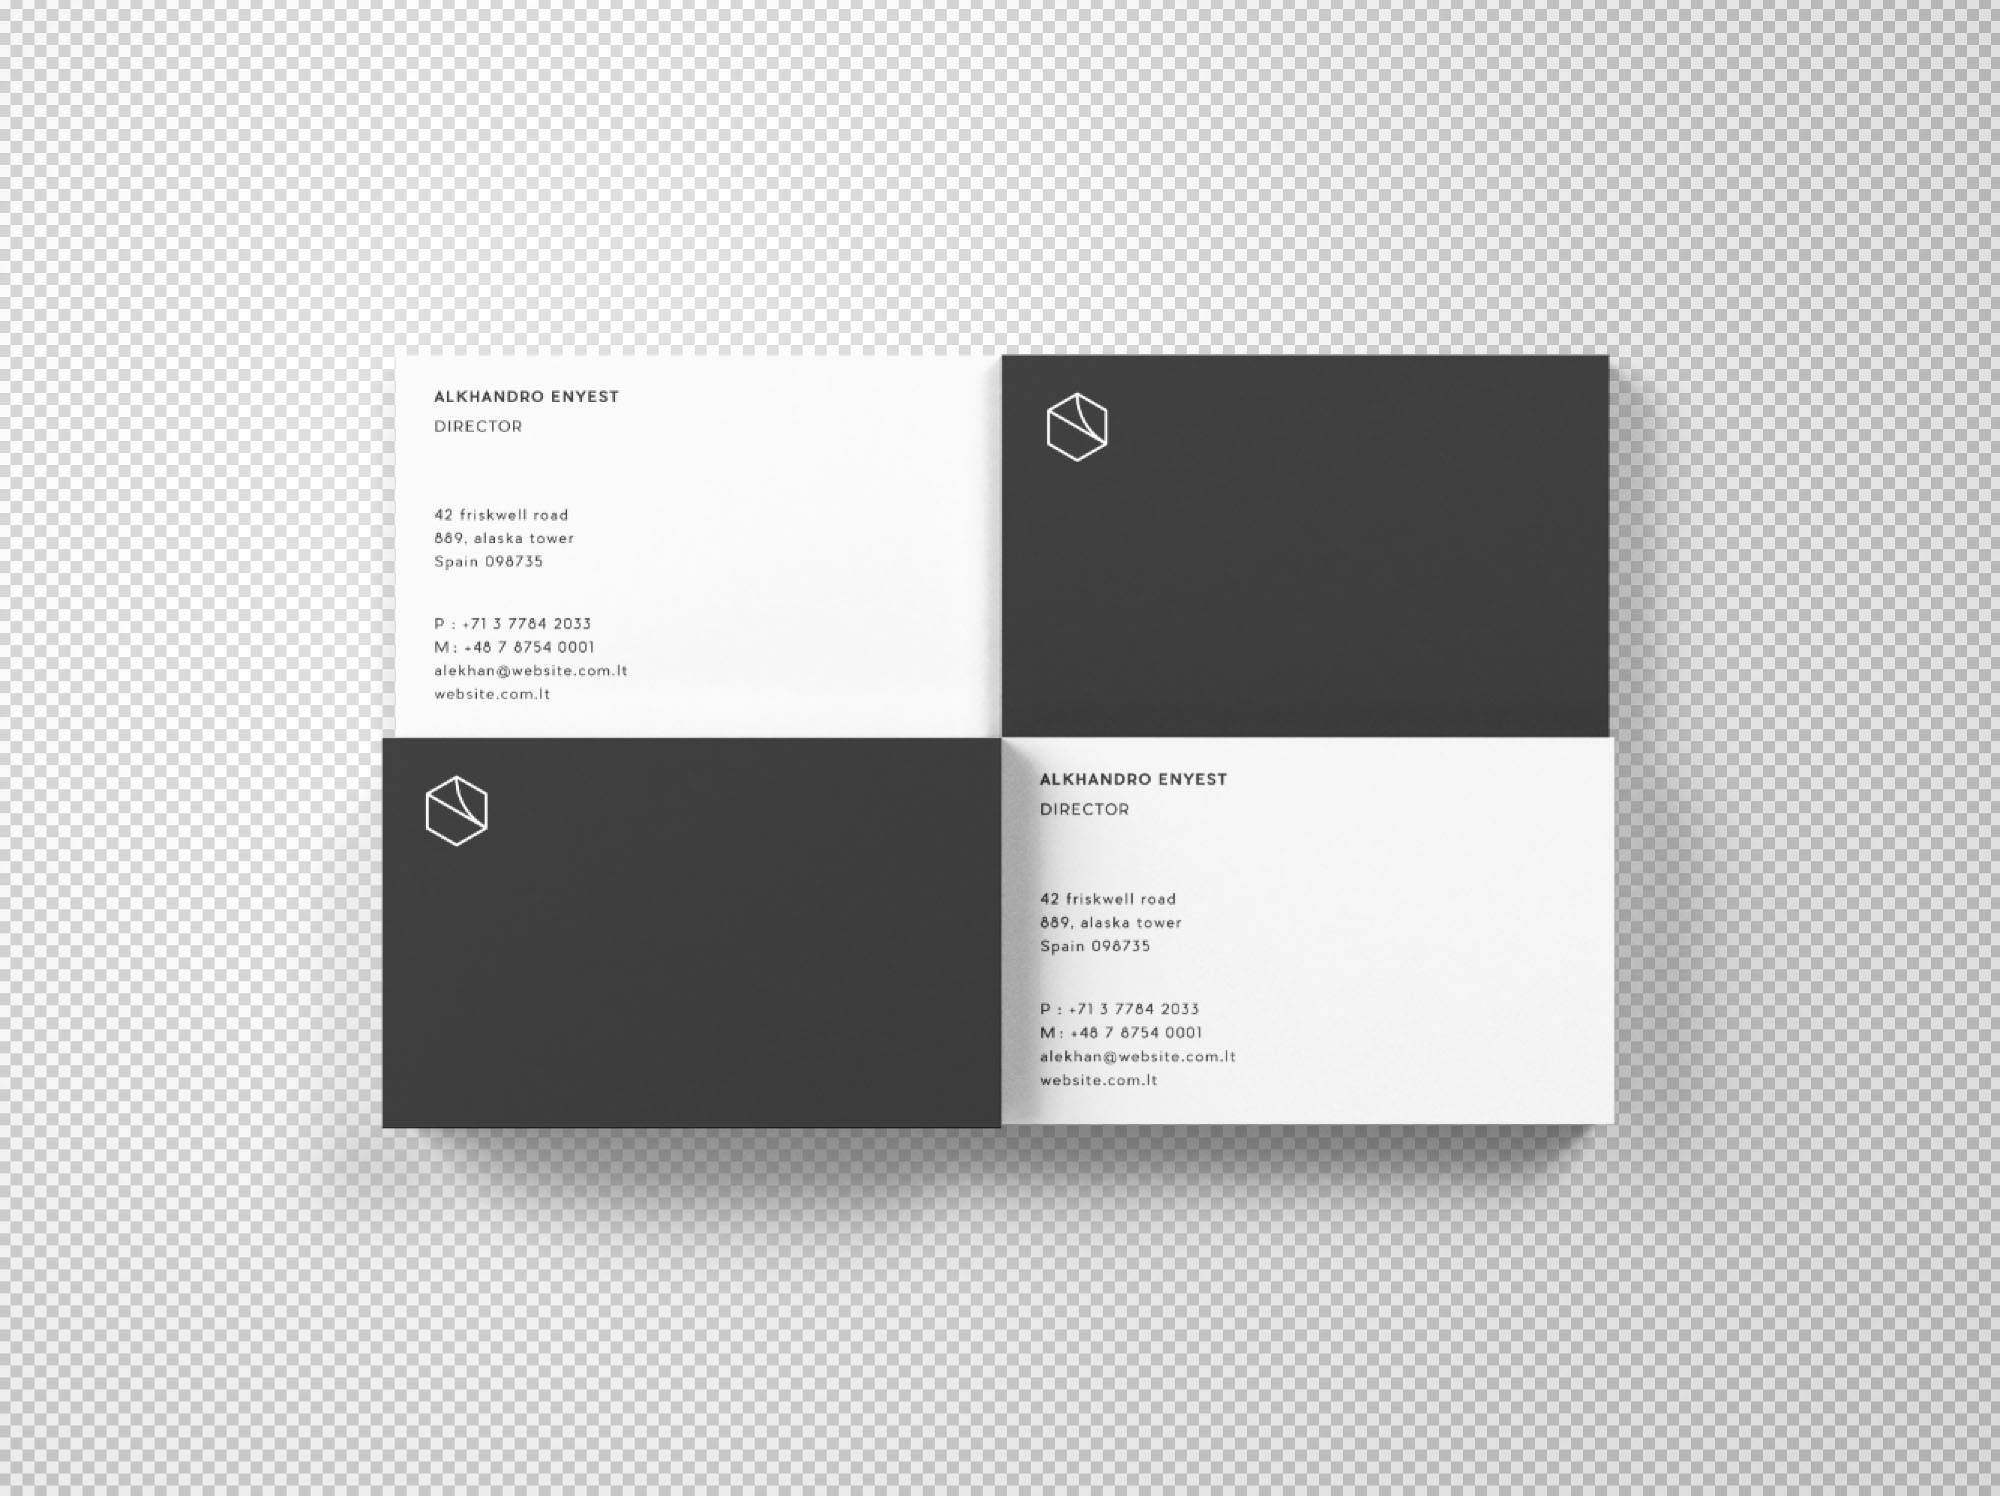 Business Cards Mockup Top View